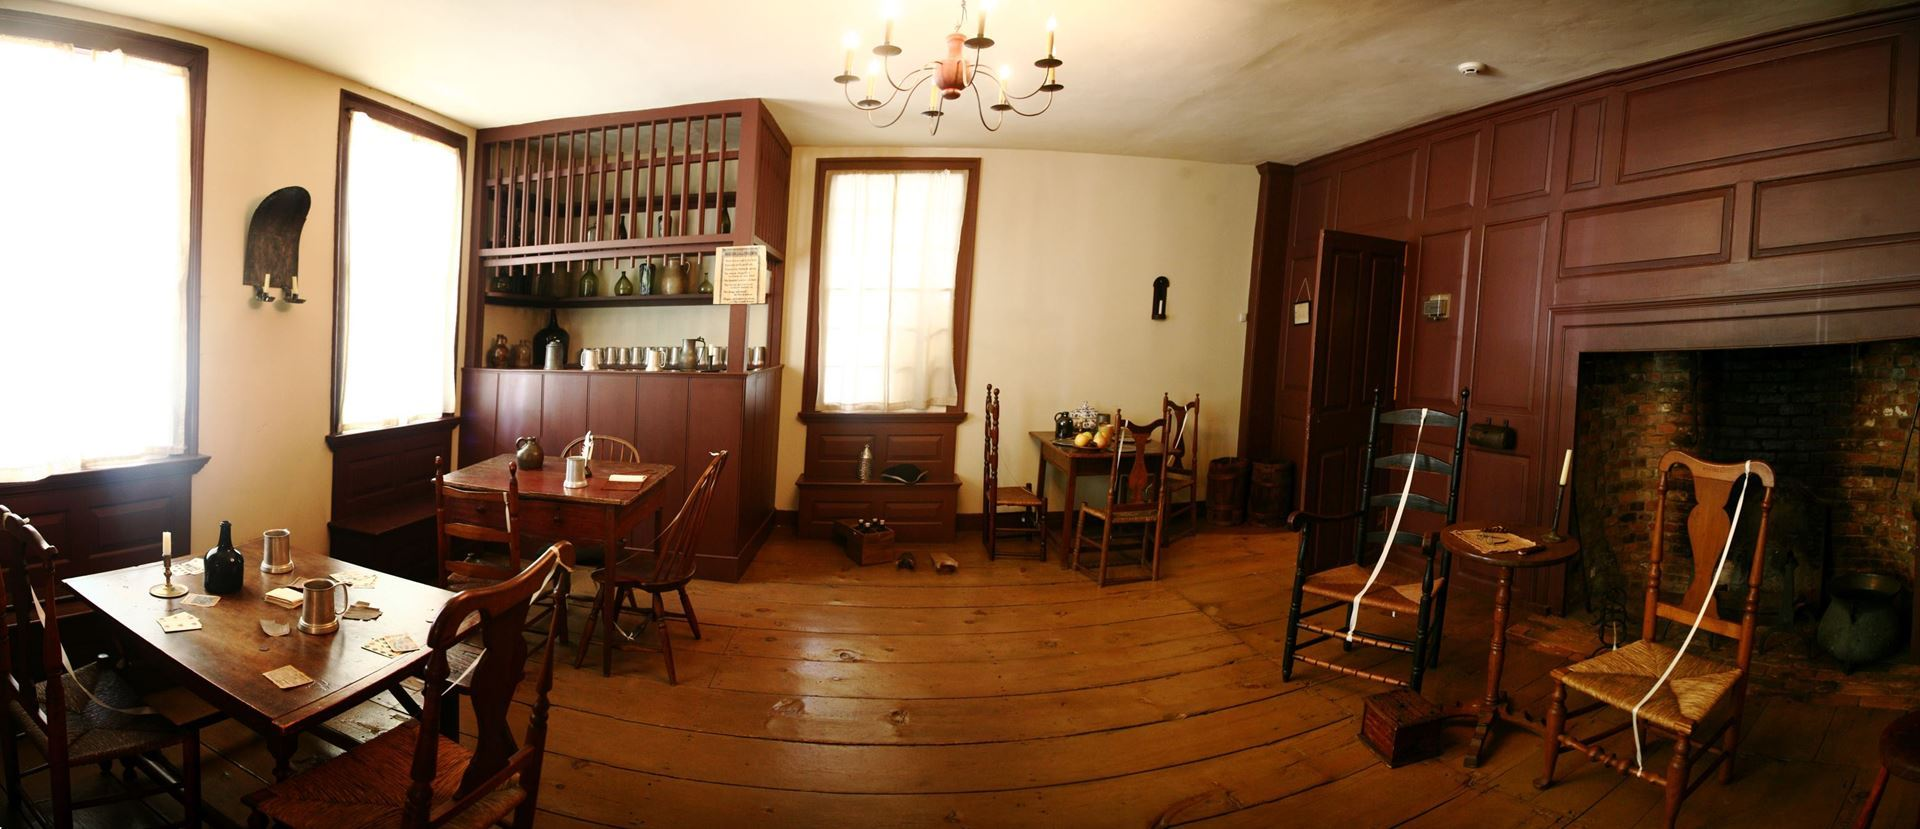 interior image of the Square House Inn, an 18th century building with colonial style furniture and large fireplace